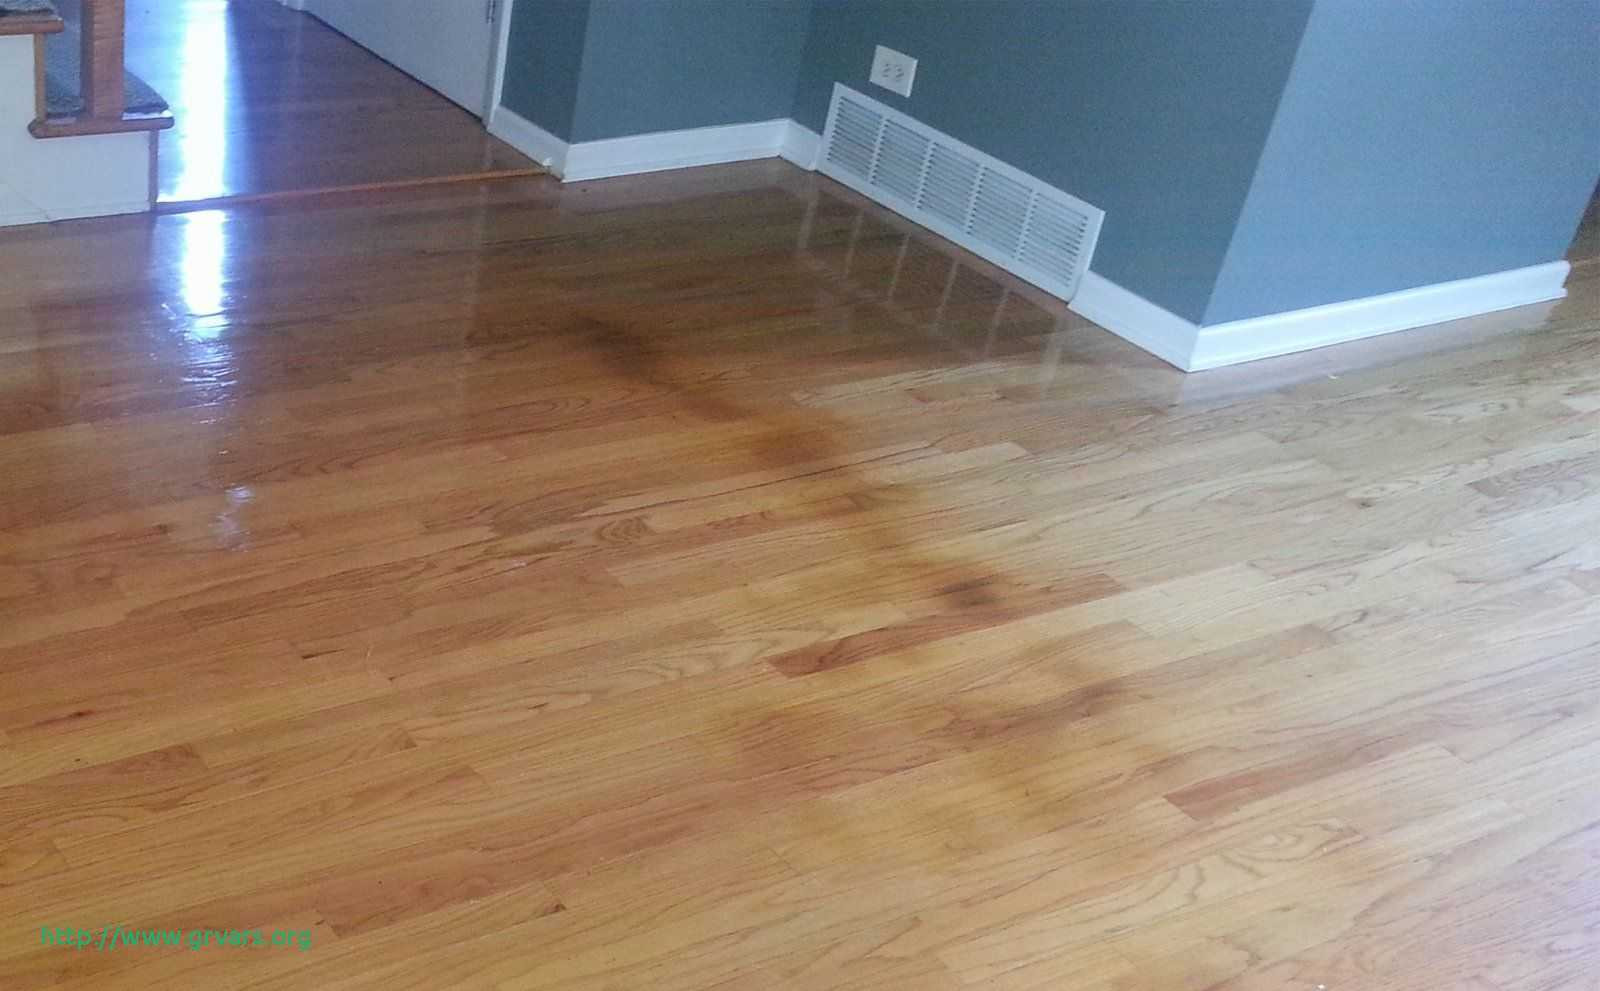 can you clean engineered hardwood floors with vinegar of 23 nouveau how to clean engineered wood floors with vinegar ideas blog for how to clean engineered wood floors with vinegar a‰lagant no moisture barrier under wood floor